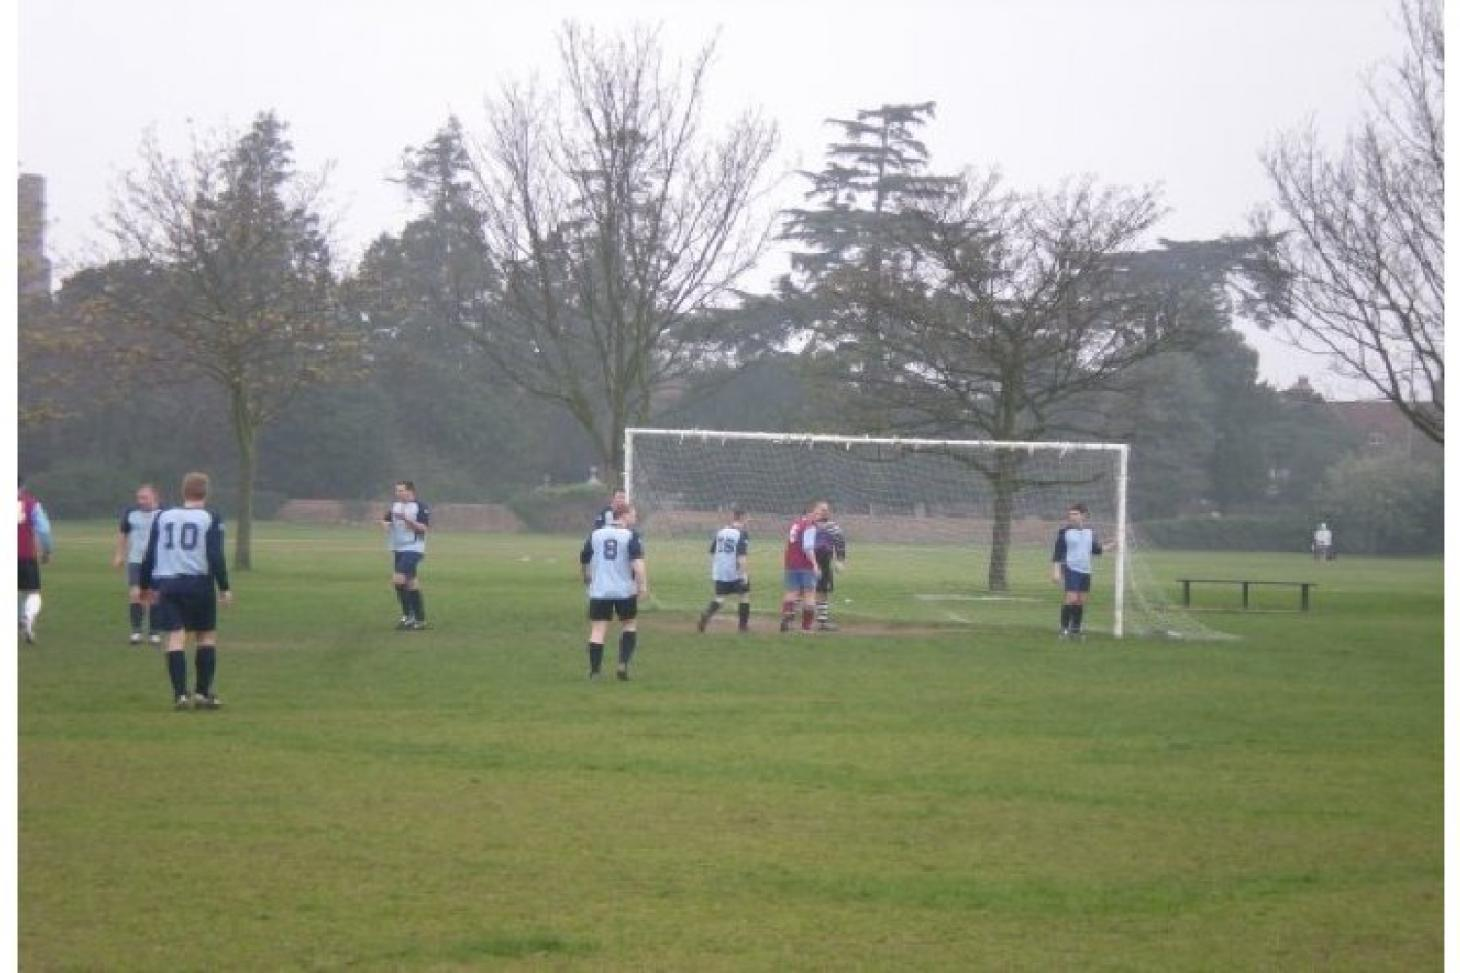 Coney Green 11 a side | Grass football pitch